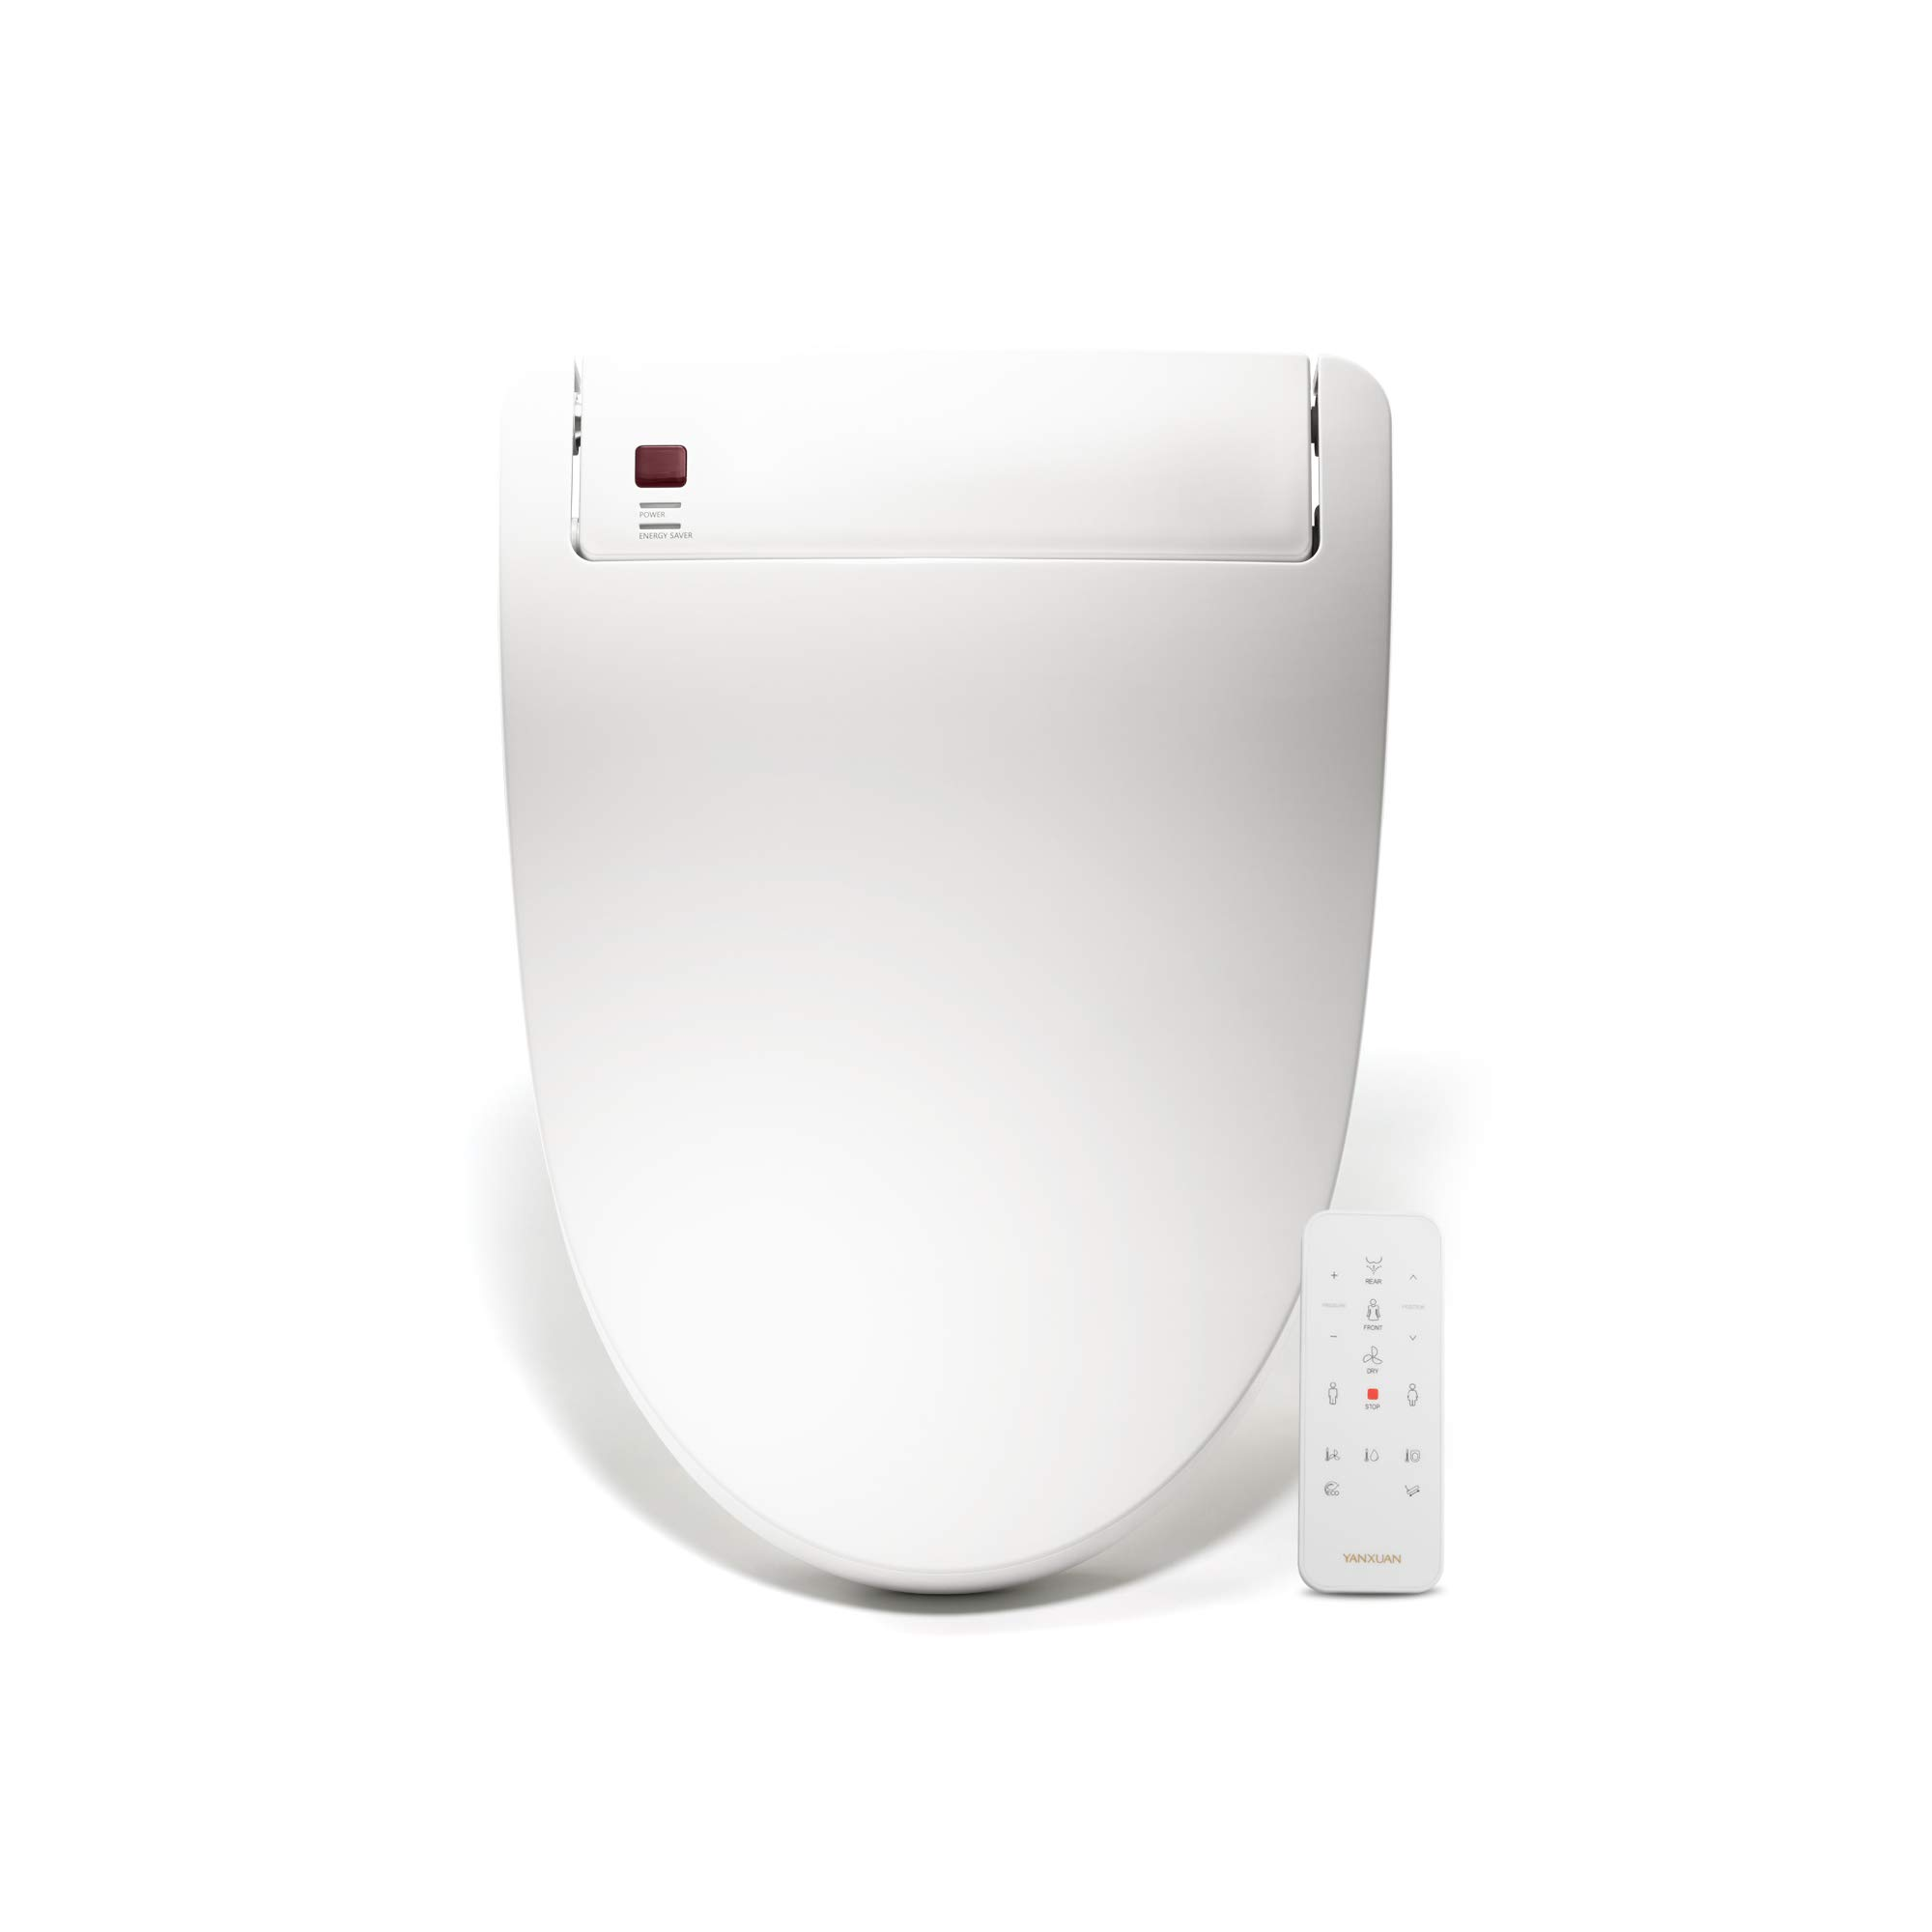 YANXUAN Elongated Toilet Seat with Self Cleaning Stainless Nozzle, Bidet with Heated Seat and Temperature Controlled Wash, Warm Air Dryer